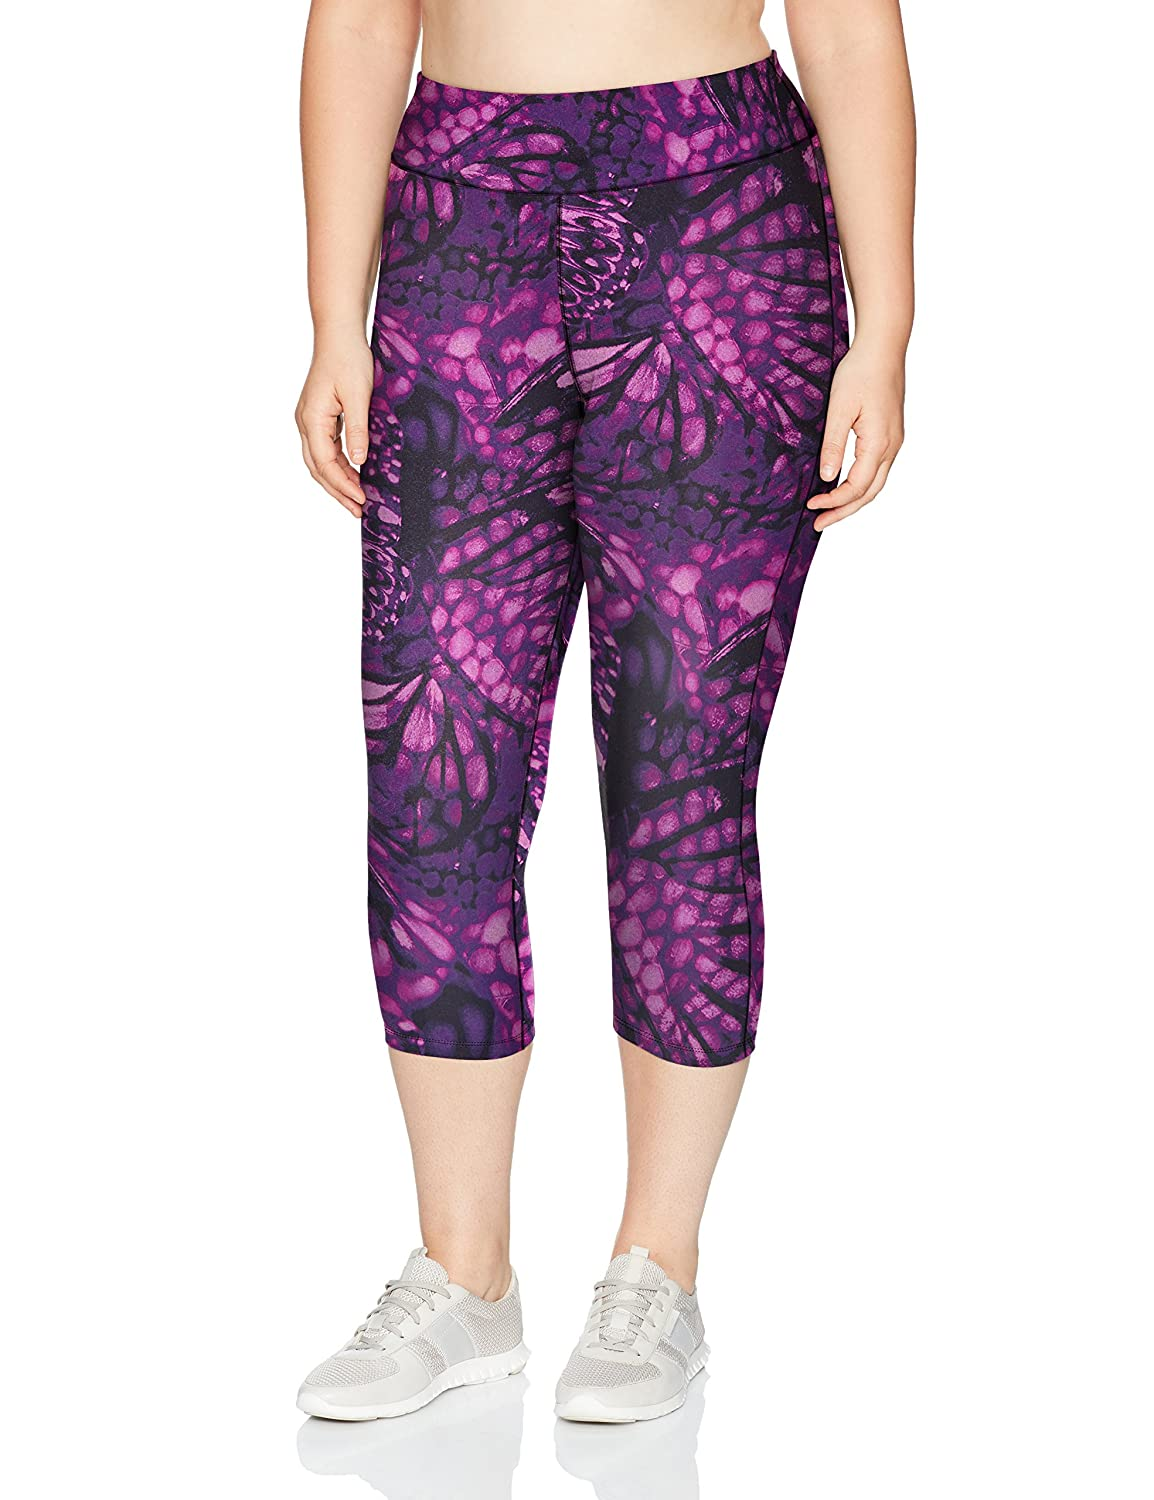 Just My Size Womens Plus-Size Active Stretch Capri Just My Size Activewear OJ366